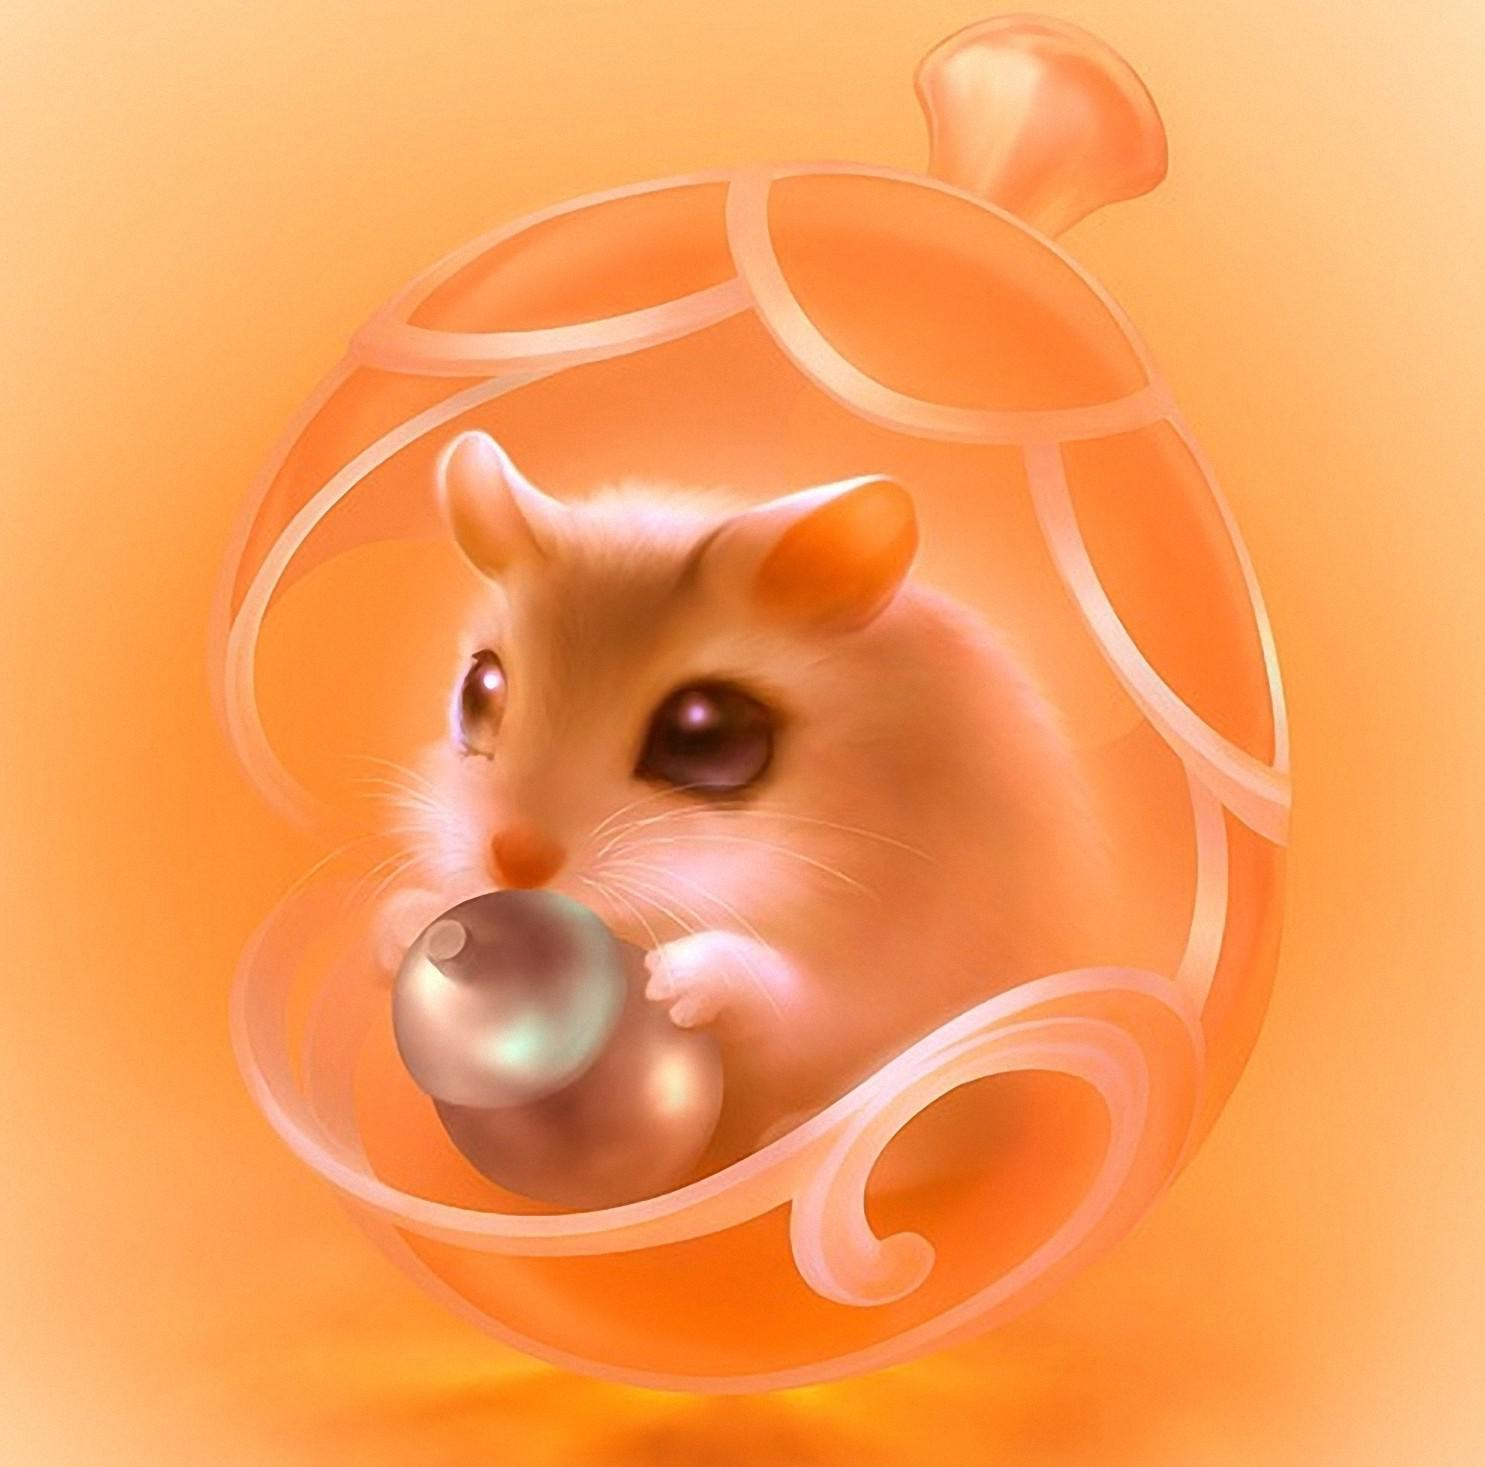 Hamster   159014   High Quality and Resolution Wallpapers on 1485x1467